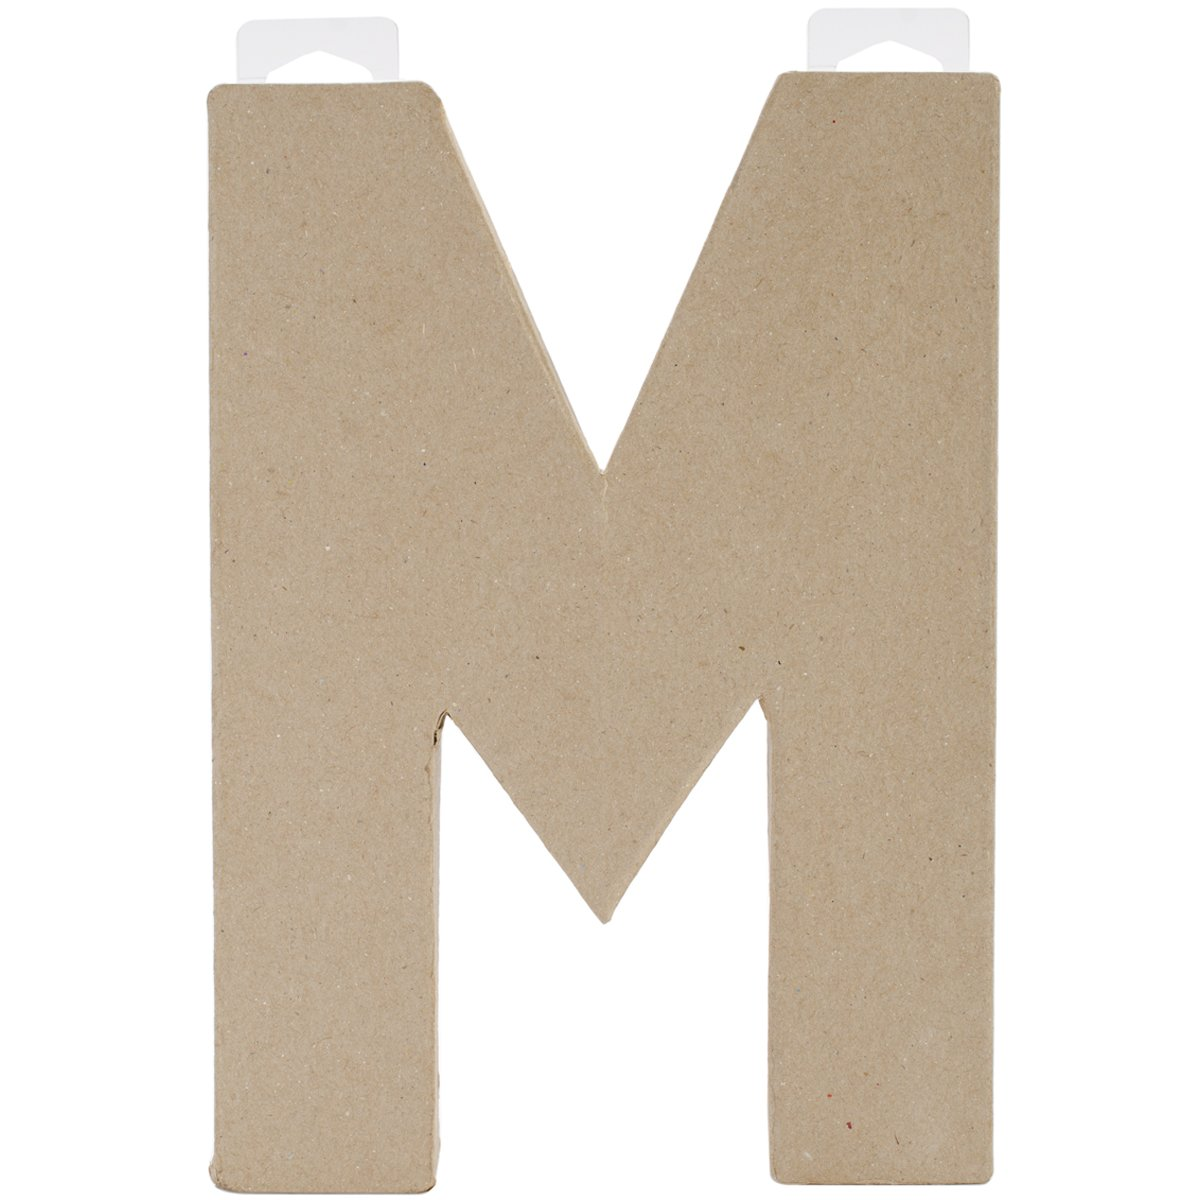 Paper Mache Letter M 8 X 5.5 Inches (12 Pack)